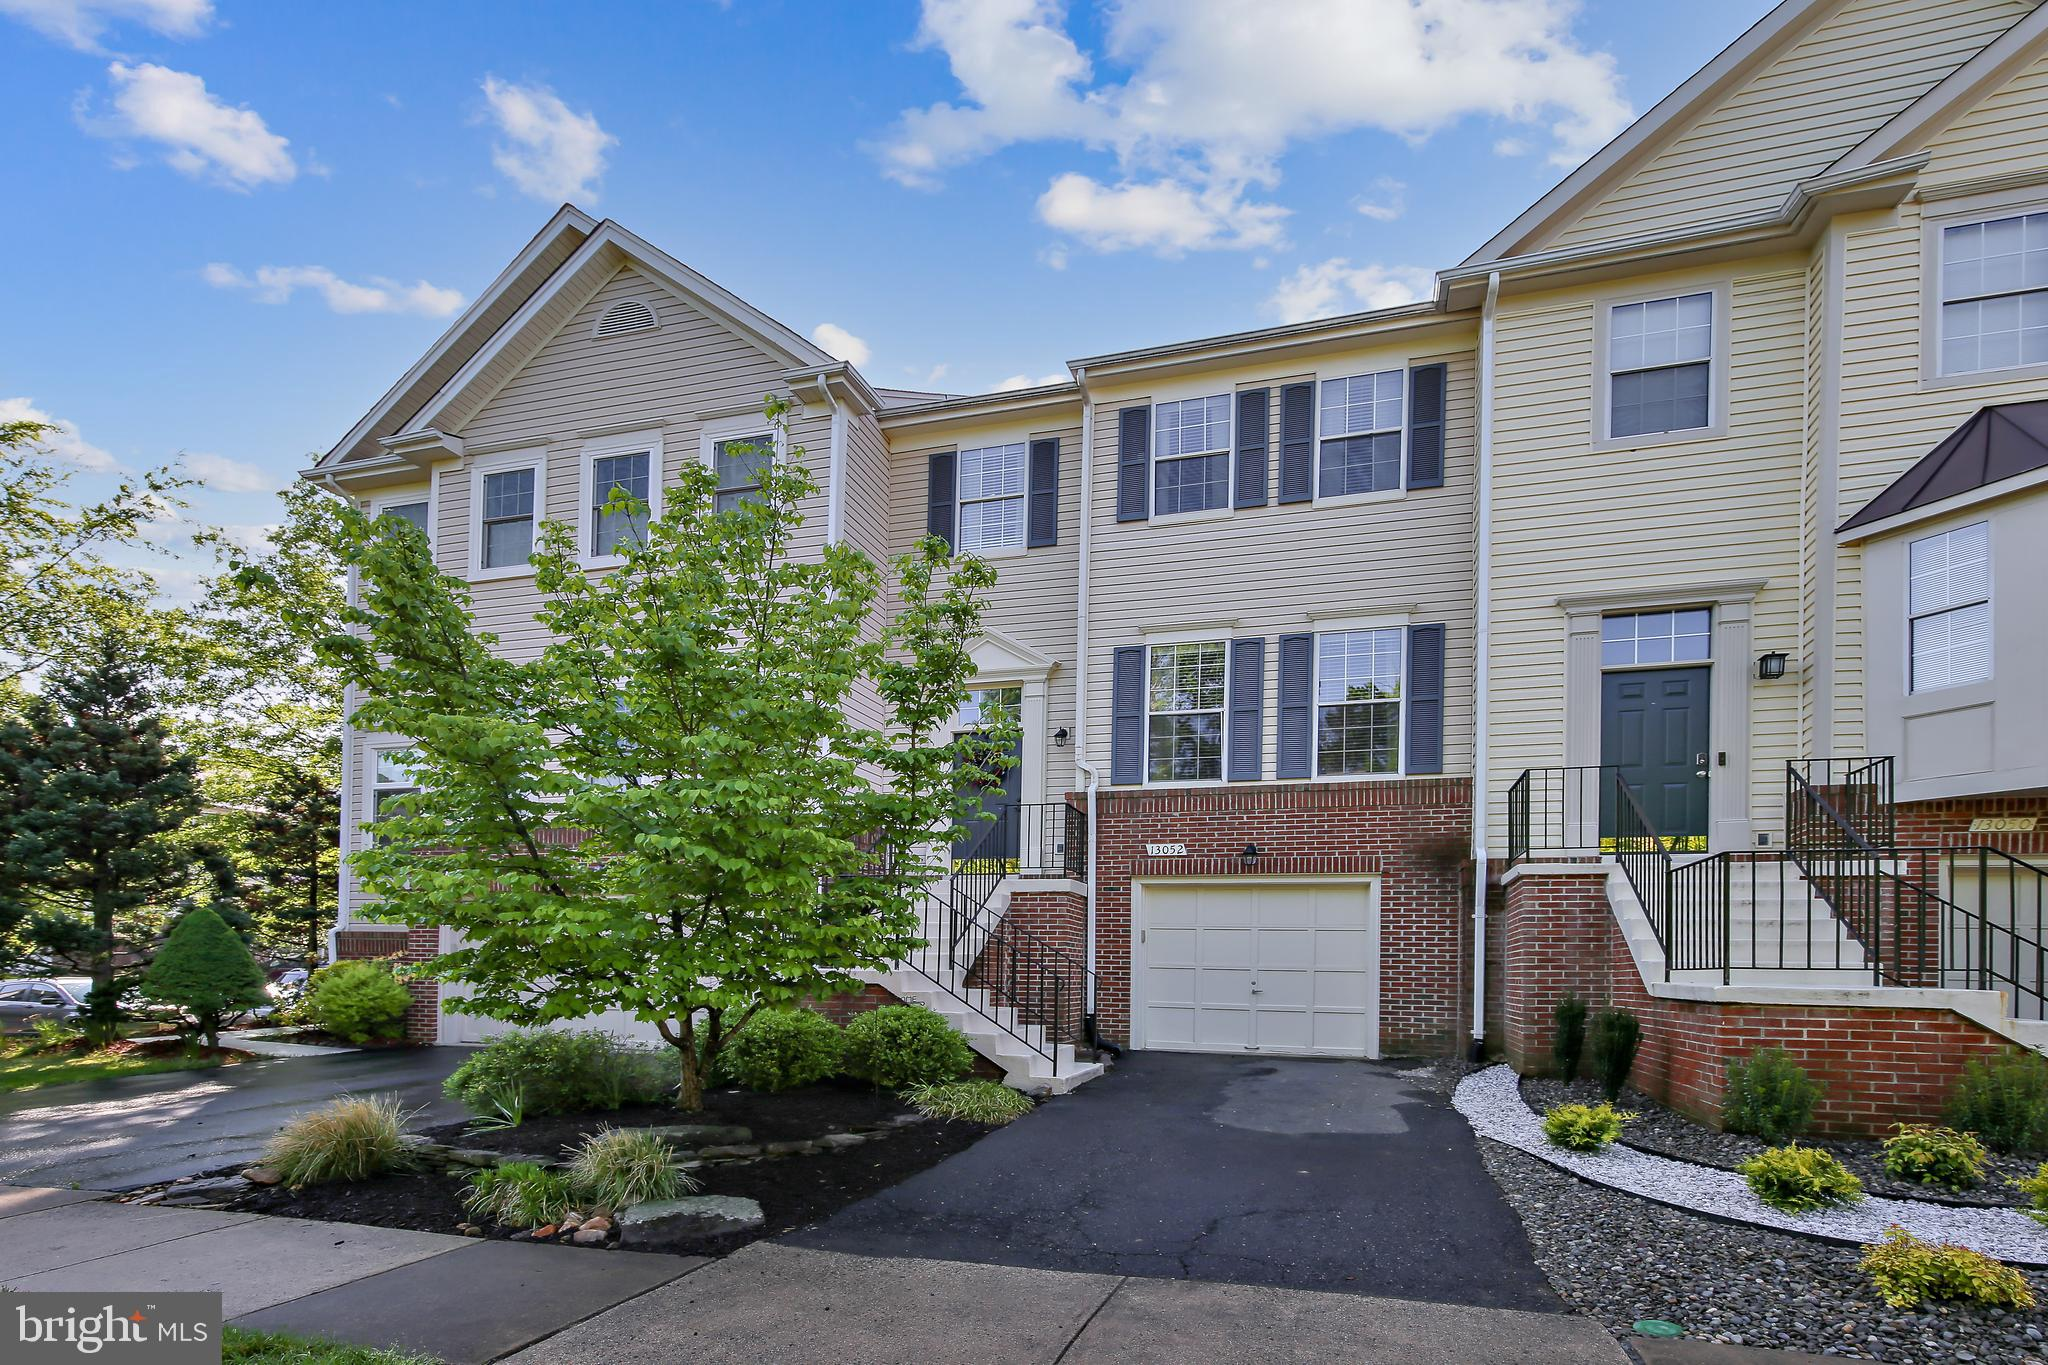 Any and All Offers due by Tuesday at 5pm. Welcome Home!!! Absolutely Beautiful 1 Car Garage Townhome on a Quiet Cul De Sac In Highly Sought After Hayden Village. This 3 Bedroom, 3.5 Bath Townhome Boosts over 2300Sq Ft of Living Space on 3 Levels. From The Moment You Pull In The Drive Way You Feel Right At Home! The Main Level Features a Hardwood Foyer, Sunny Living Room, Formal Dining Area with Hardwoods, Sitting Room/ Office Area with French Doors Leading to a Large Deck Perfect For Entertaining and a Gourmet Kitchen. The Kitchen has Stainless Appliances, Granite, Breakfast Bar and a Pantry.  The Lower Level has a Family Room with a Wood Burning Fireplace, Full Bathroom, Laundry Area and Storage. The Upper Level Features a Master Suite with a Walk In Closet and an Owners Bath. The Upper Level has 2 Additional Great Size Bedrooms and a Hall Bath. This Home is Walking Distance to Hayden Village Swimming Pool, Tennis Courts, Play Ground and So Much More. Conveniently Located Near Shopping, Restaurants, Old Town Clifton,  Parks and More. Fantastic Location with Easy Access to 66, 7100, Braddock Rd and 29. Great Schools. Hurry Home!